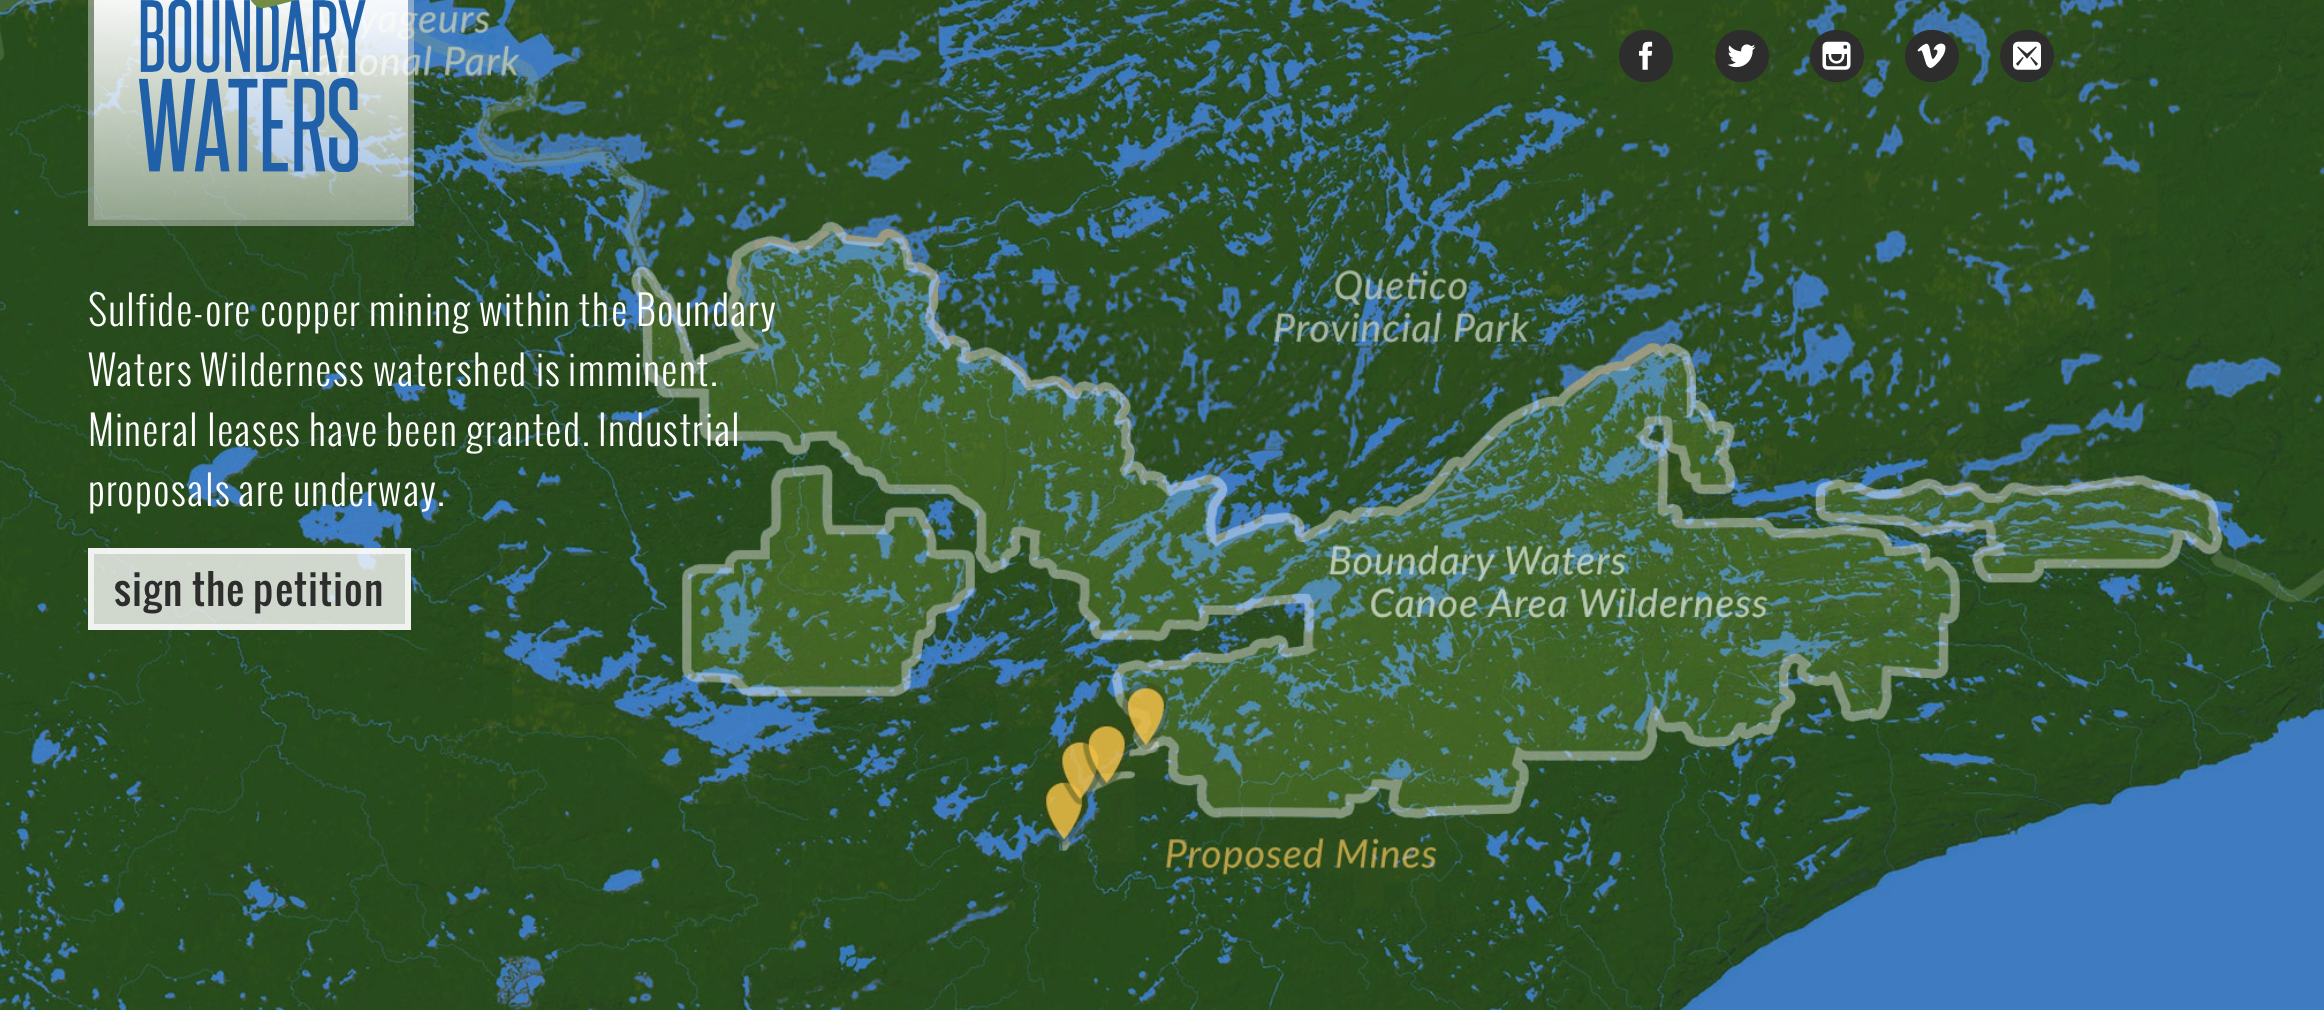 Boundary waters area map